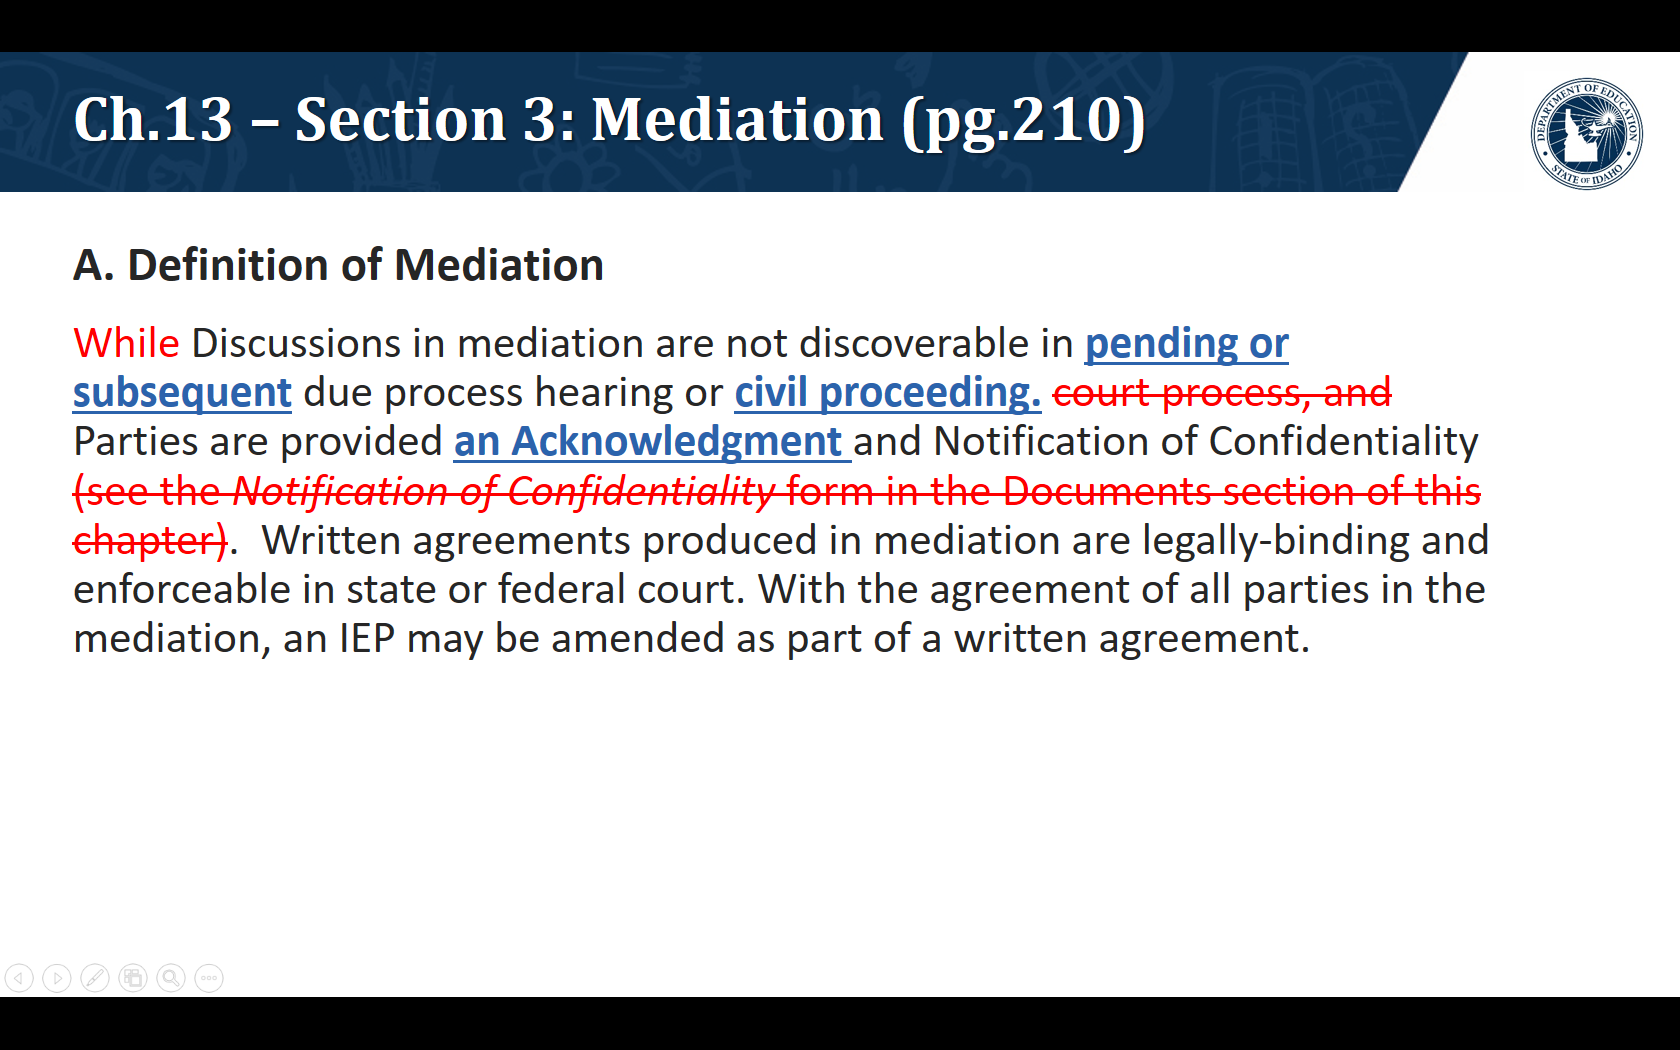 A. Definition of Mediation. Discussions in mediation are not discoverable in pending or subsequent due process hearing or civil proceeding. Parties are provided an Acknowledgment and Notification of Confidentiality.Written agreements produced in mediation are legally-binding and enforceable in state or federal court. With the agreement of all parties in the mediation, an IEP may be amended as part of a written agreement.